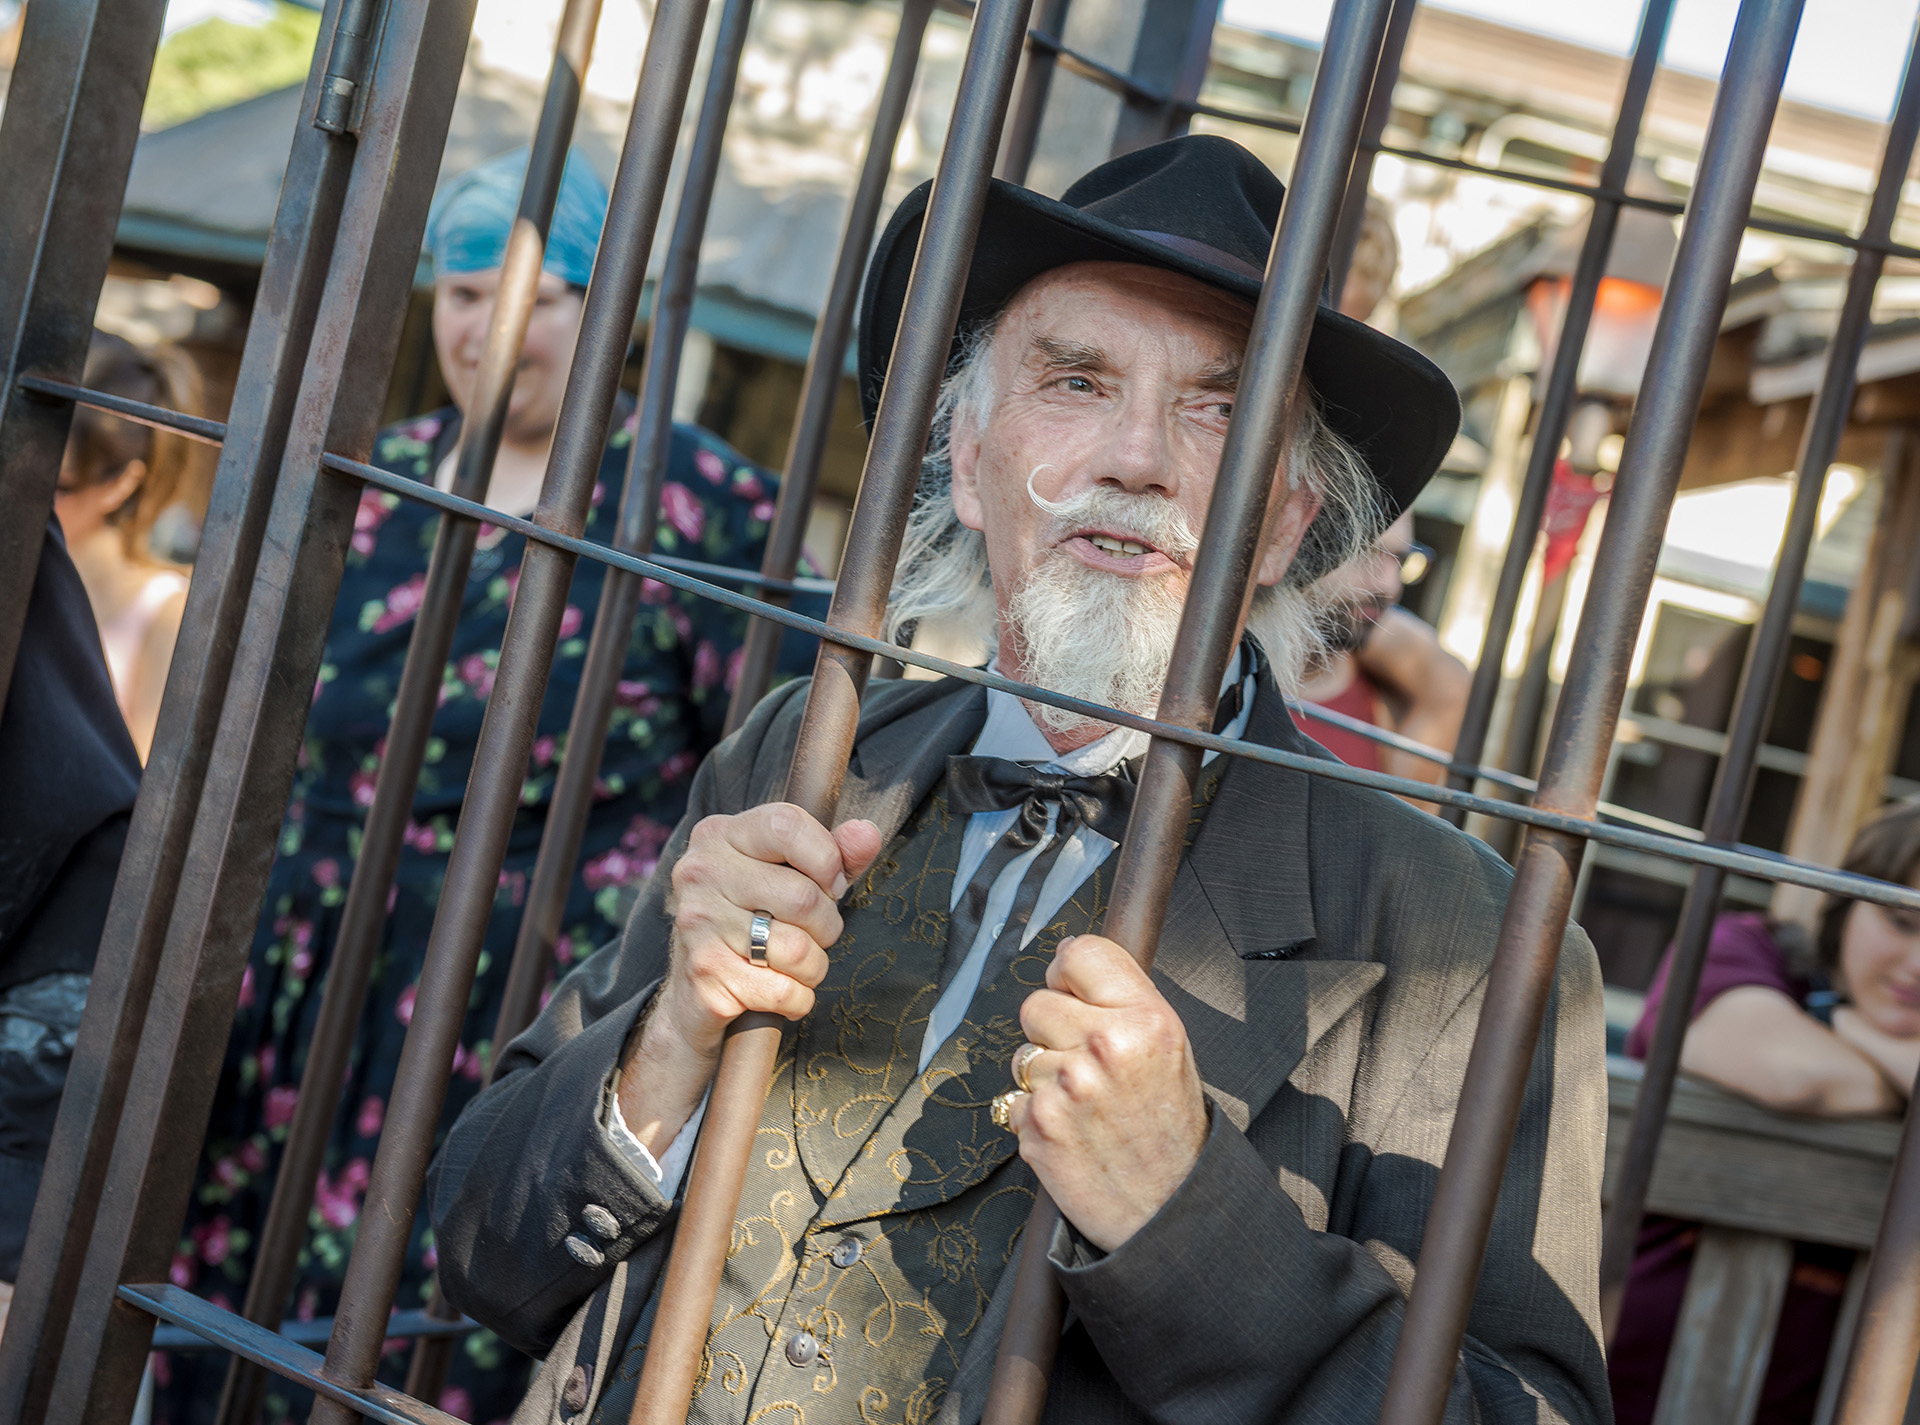 Even Judge Roy Bean was not immune to the Calico slammer.